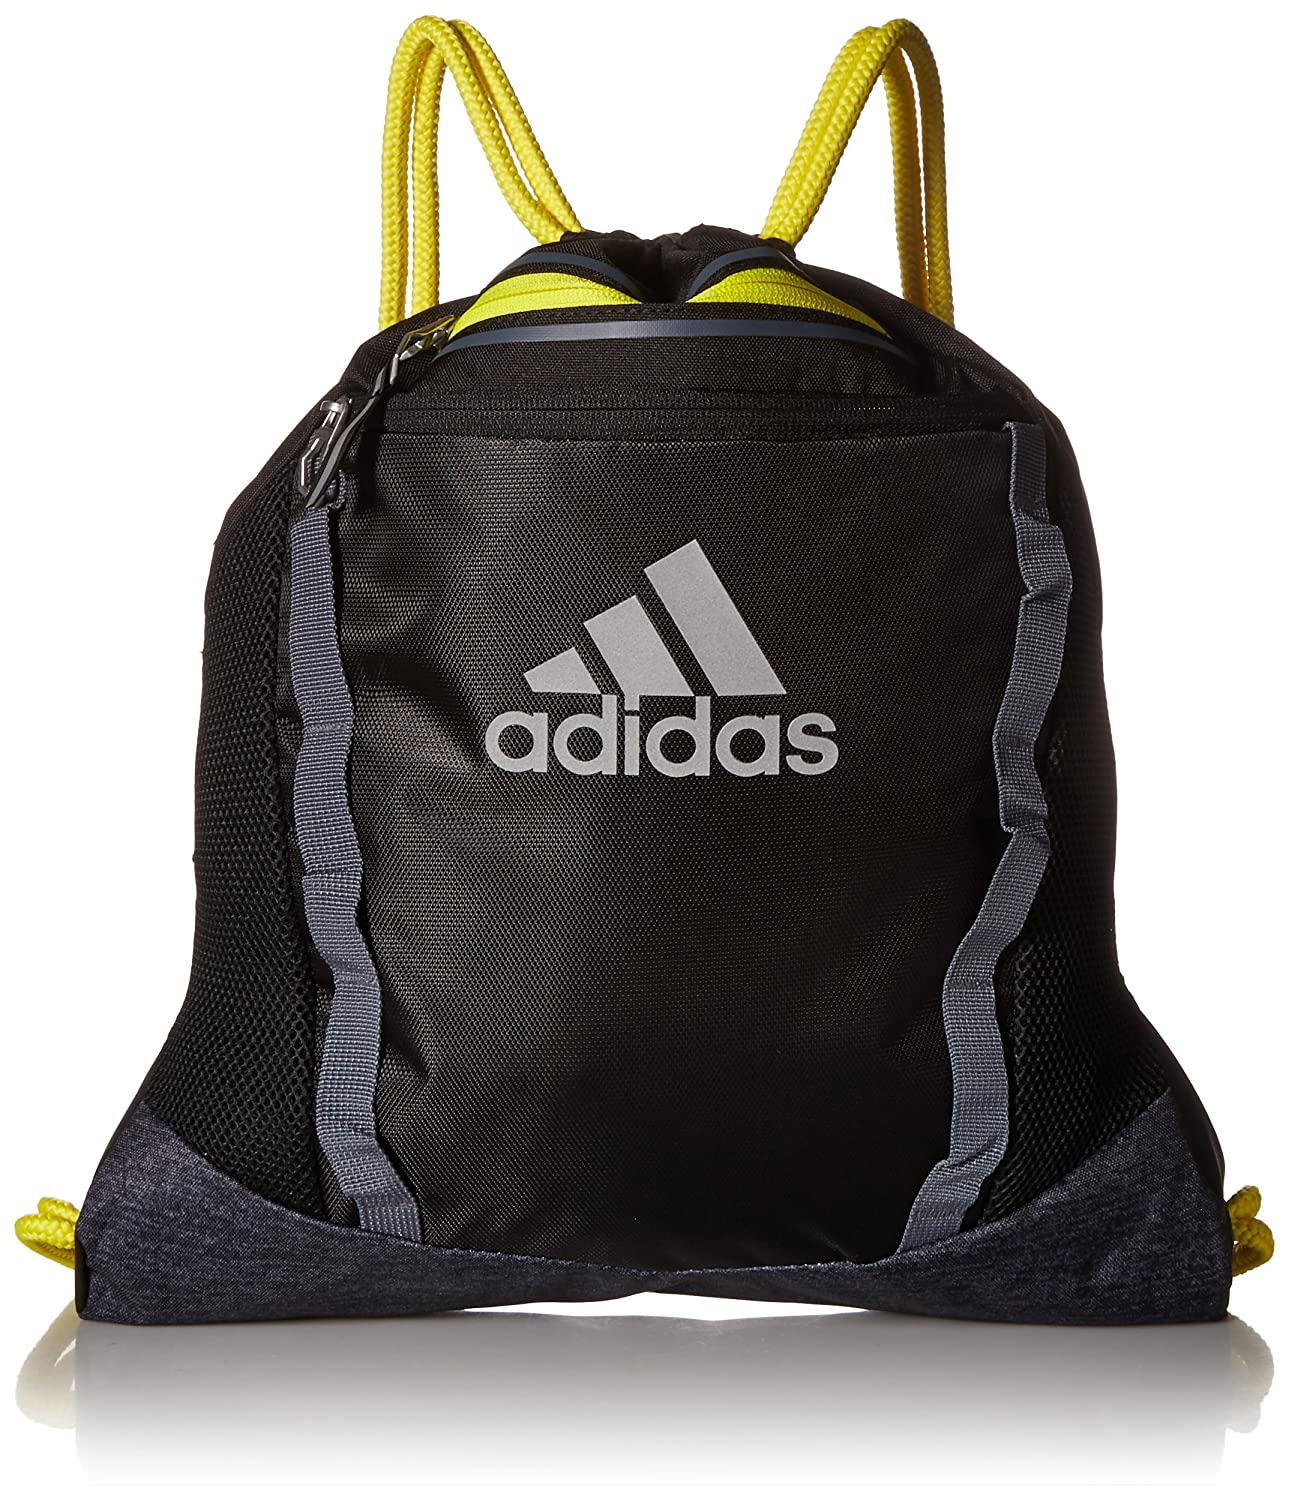 975869 Adidas Rumble Sackpack Onix Jersey//Black//Semi Solar Yellow One Size Agron Inc adidas Bags